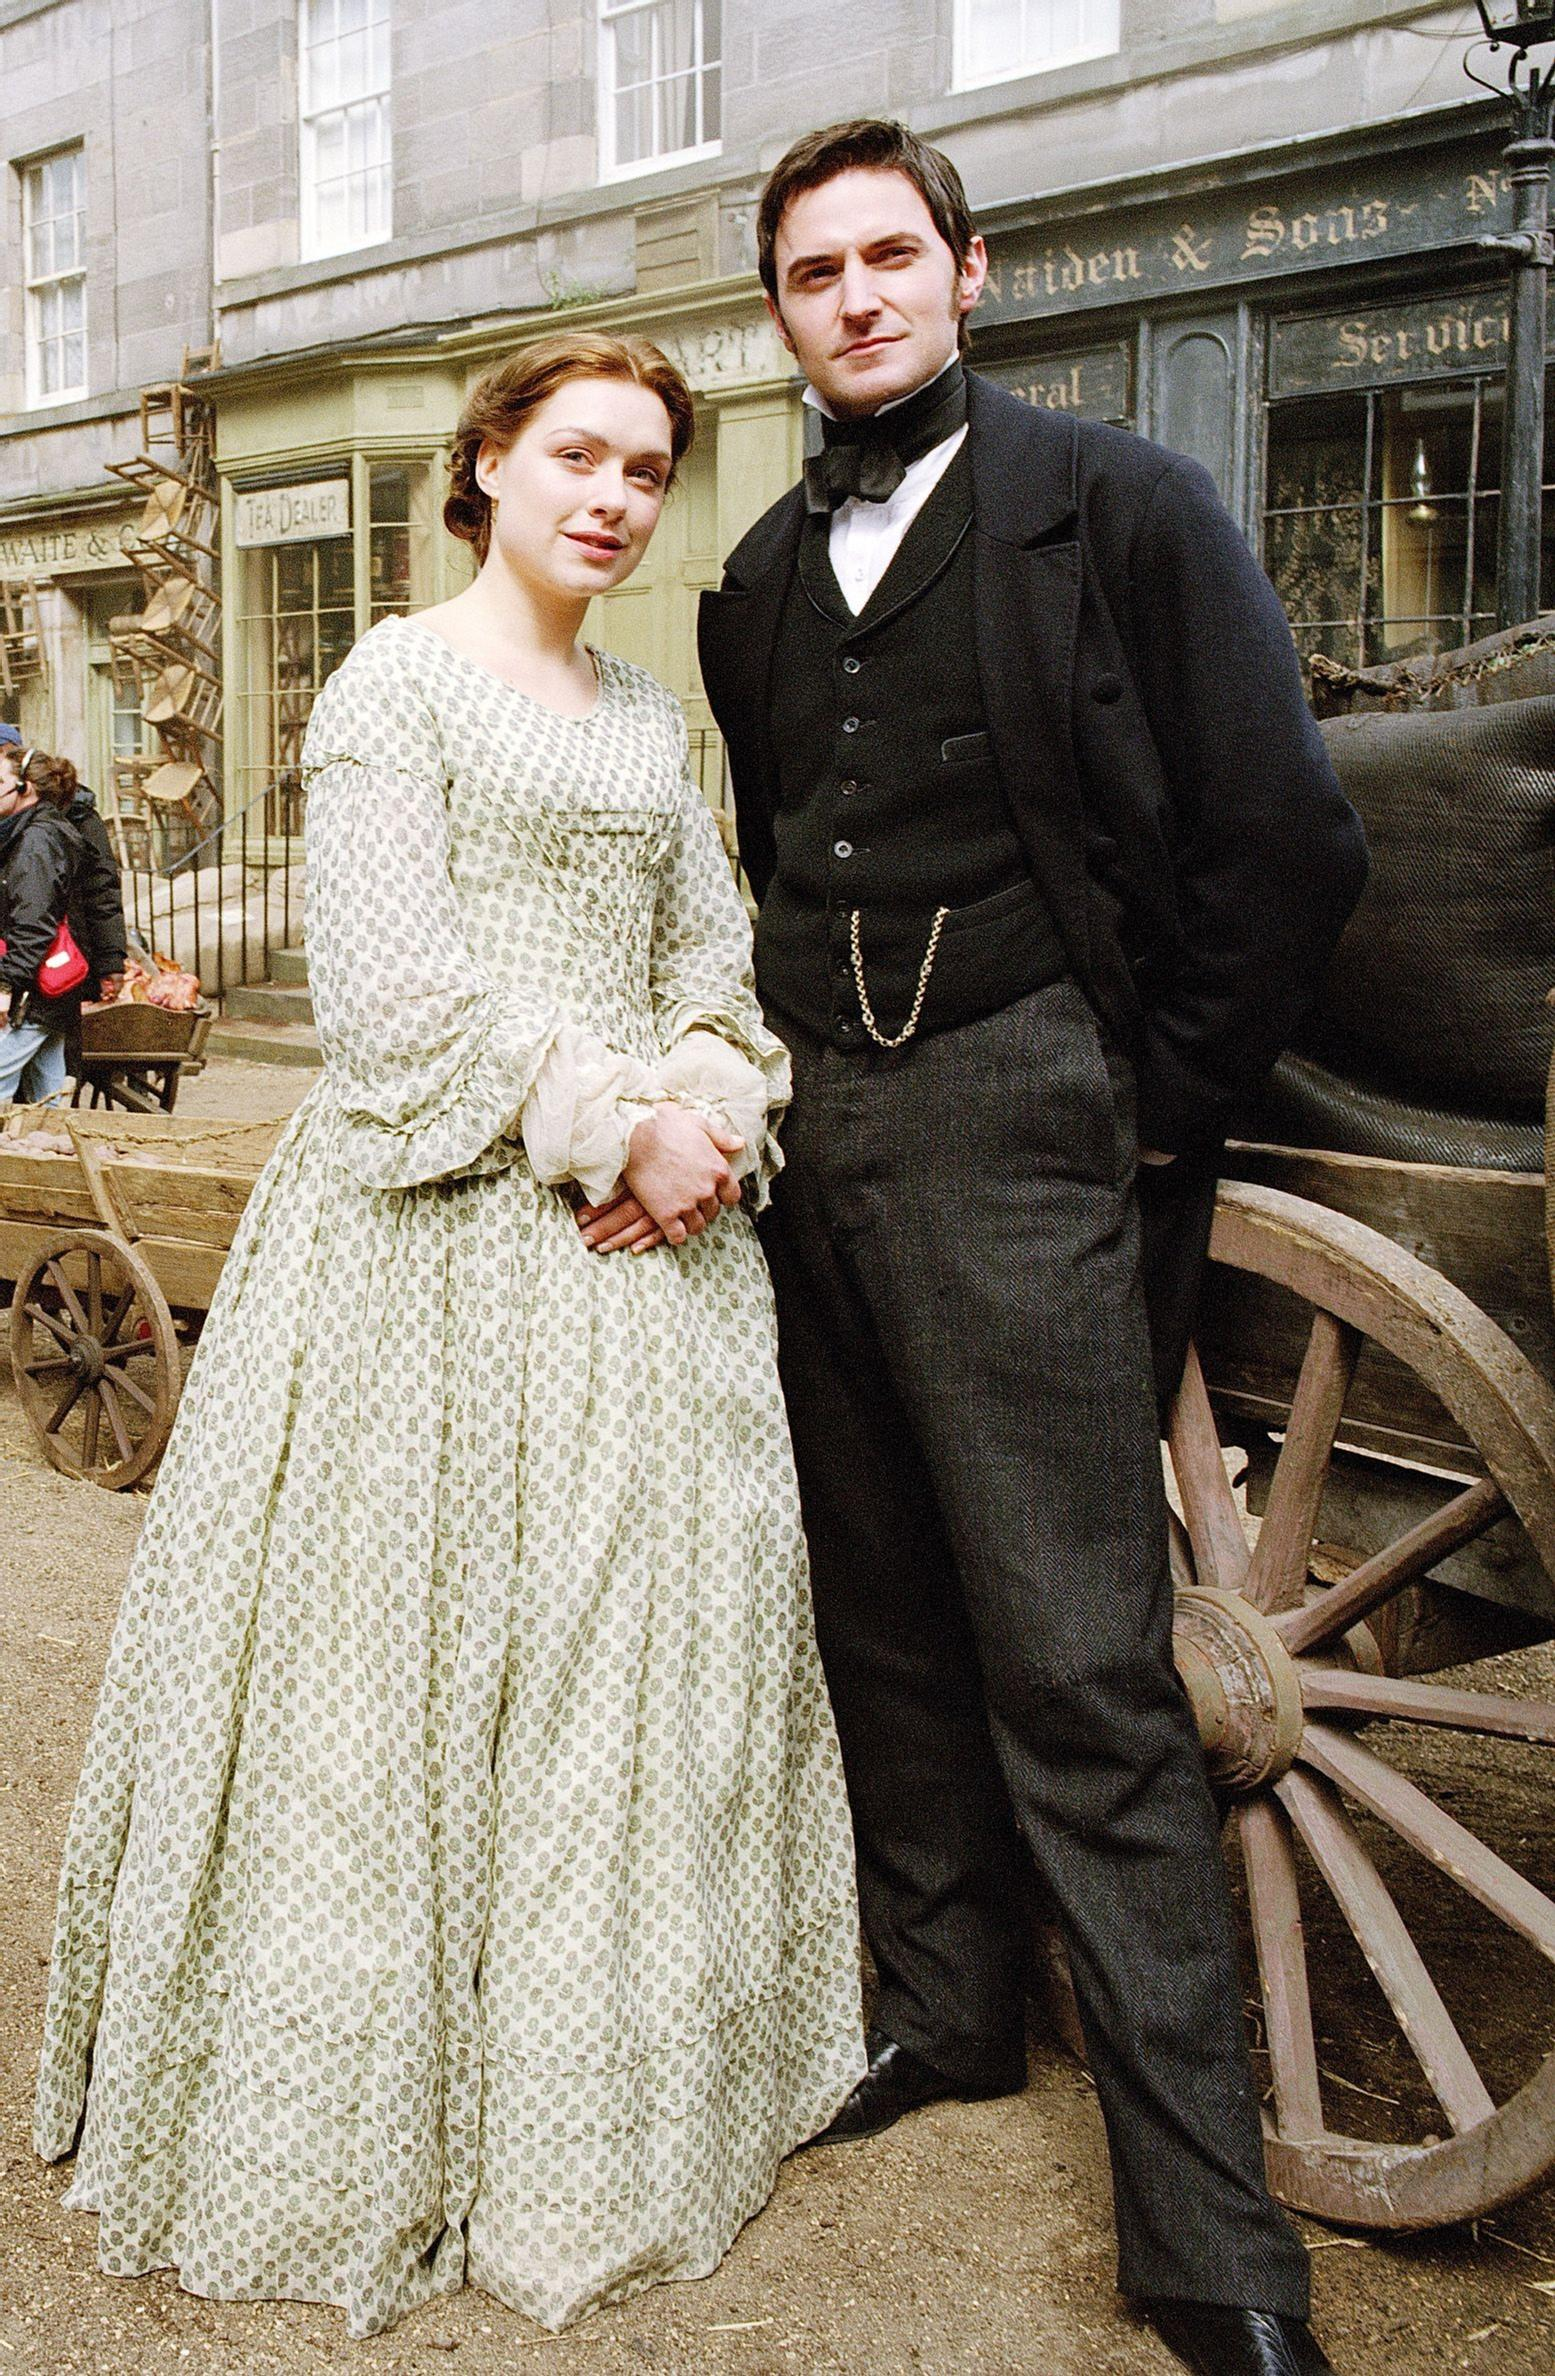 North and South - North and South Photo (32051751) - Fanpop